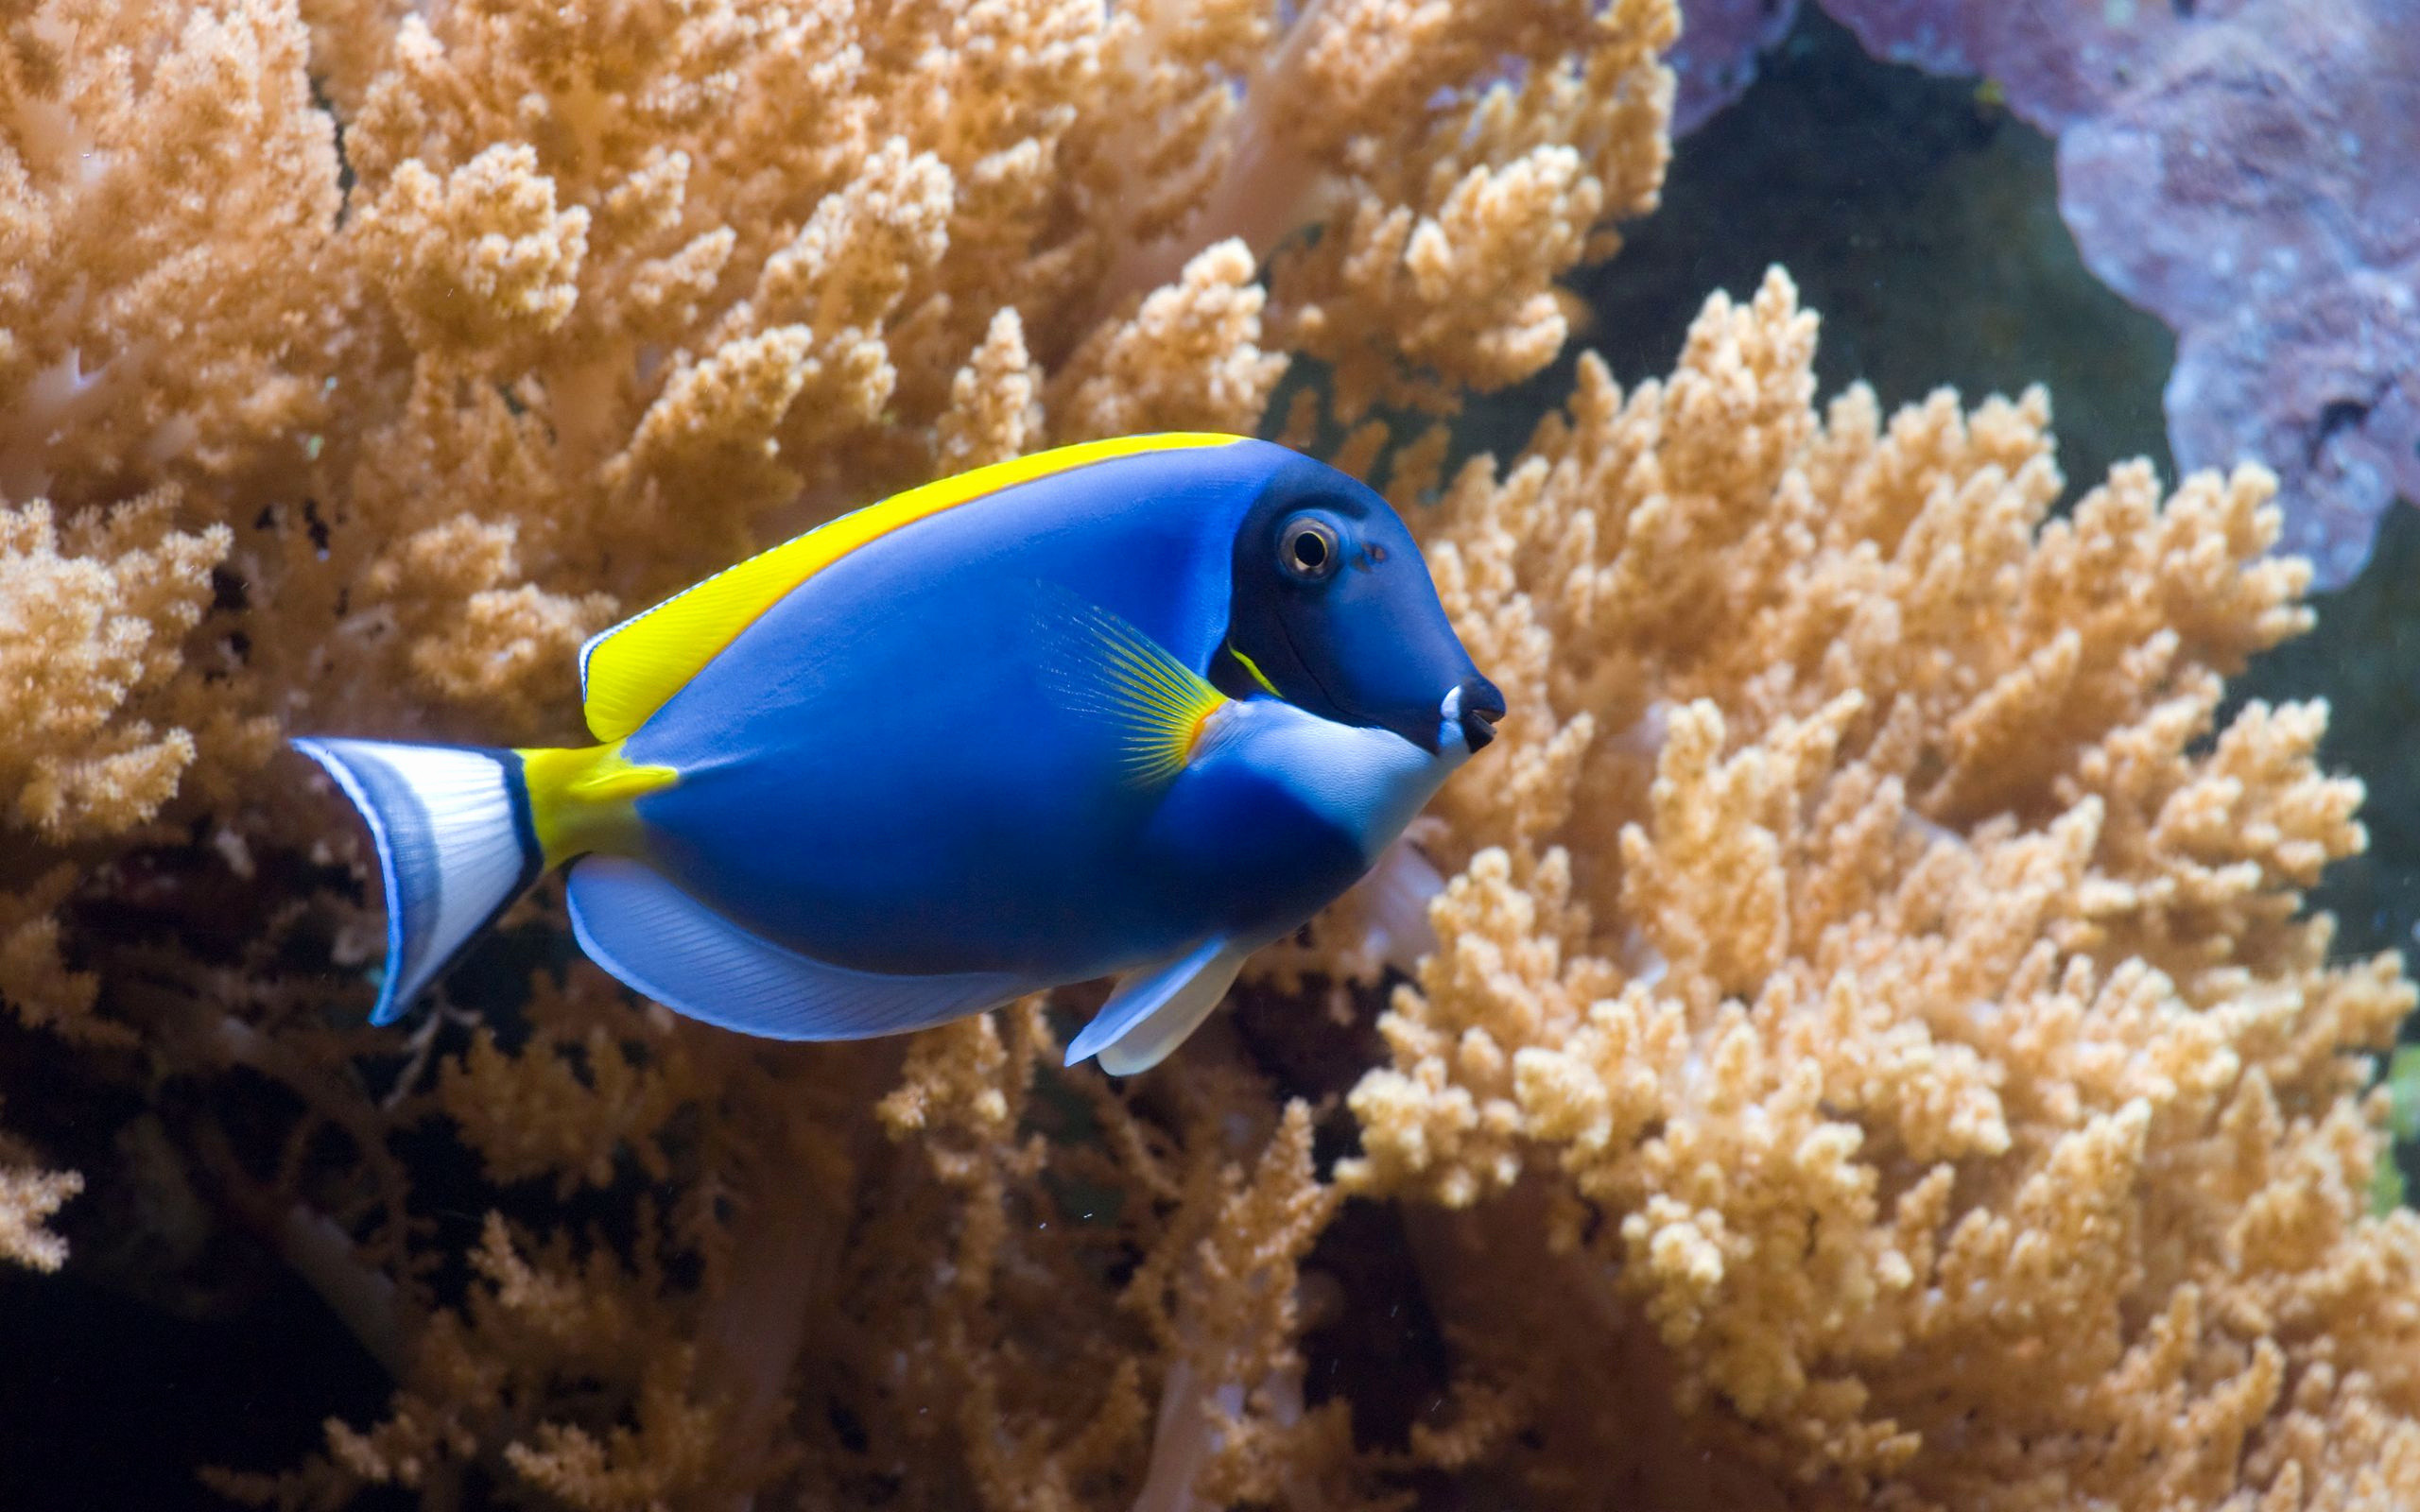 Res: 2560x1600, Live Fish Wallpaper Awesome Pin by Mark On Hd Wallpapers Pinterest